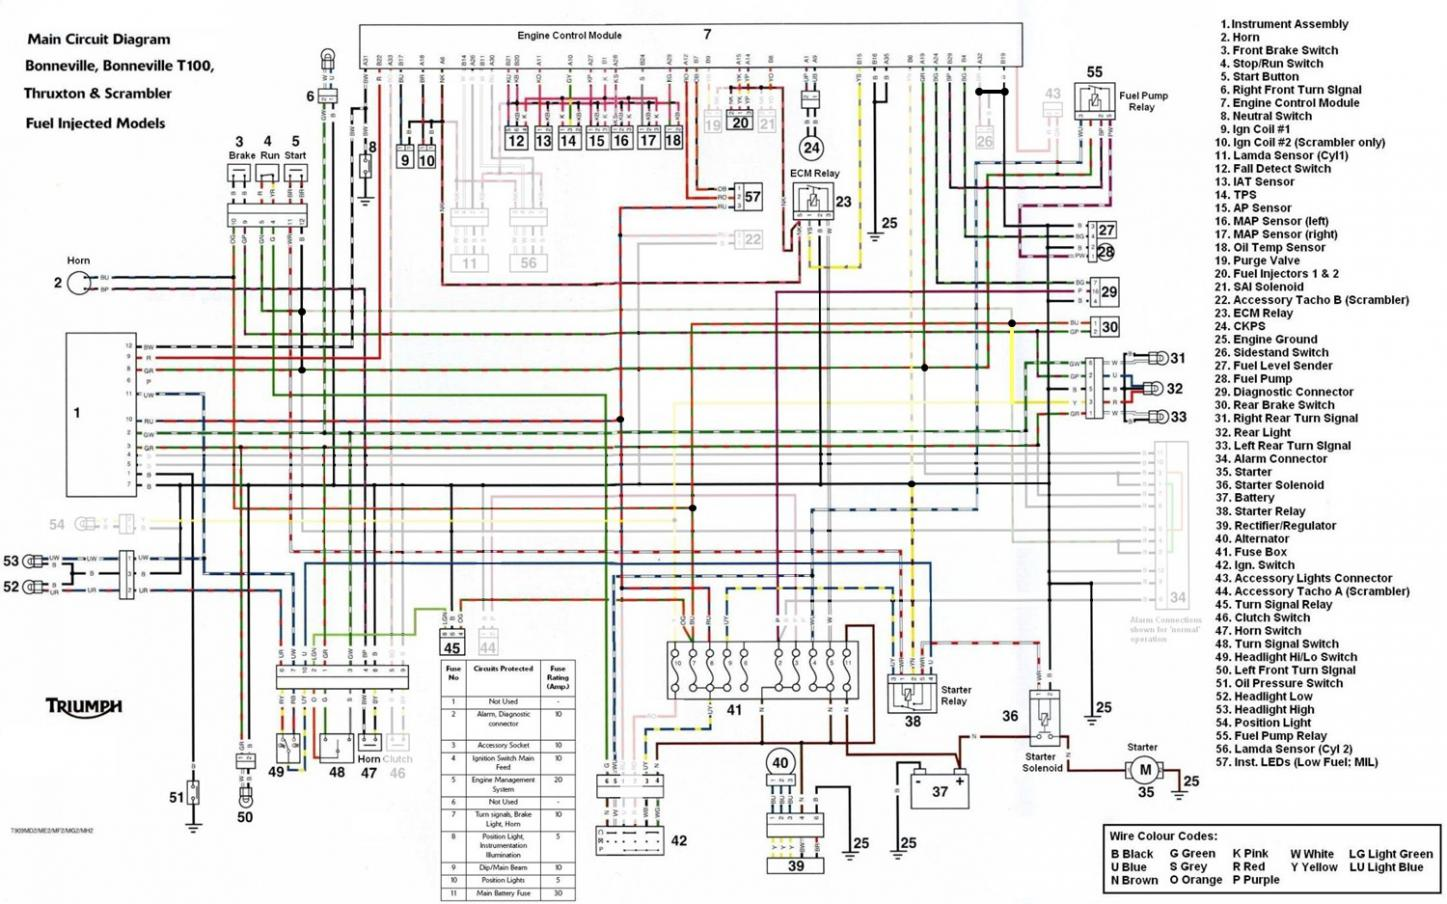 wiring diagram for motorcycle 2002 honda civic coupe radio xr 650 19 stromoeko de u2022xr irg preistastisch u2022